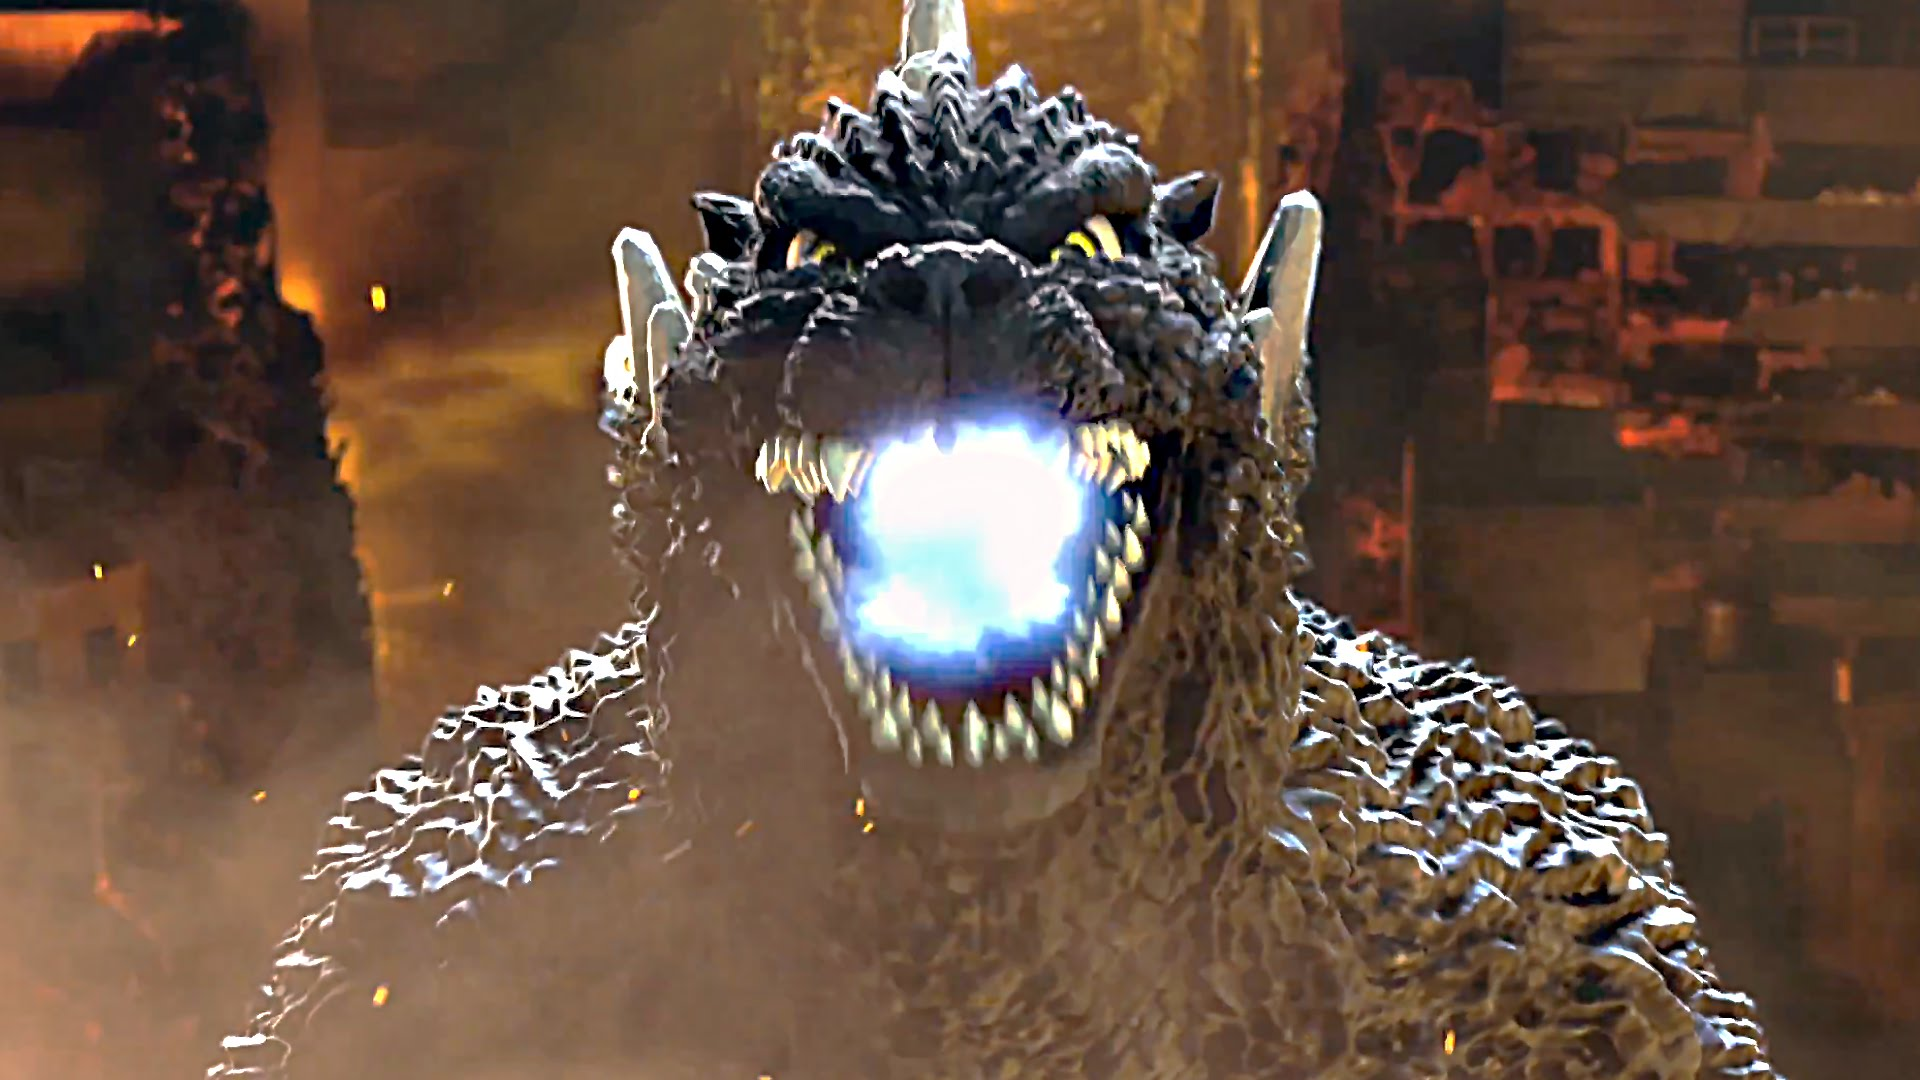 Godzilla Games - Play Free Godzilla Games on Veve Games